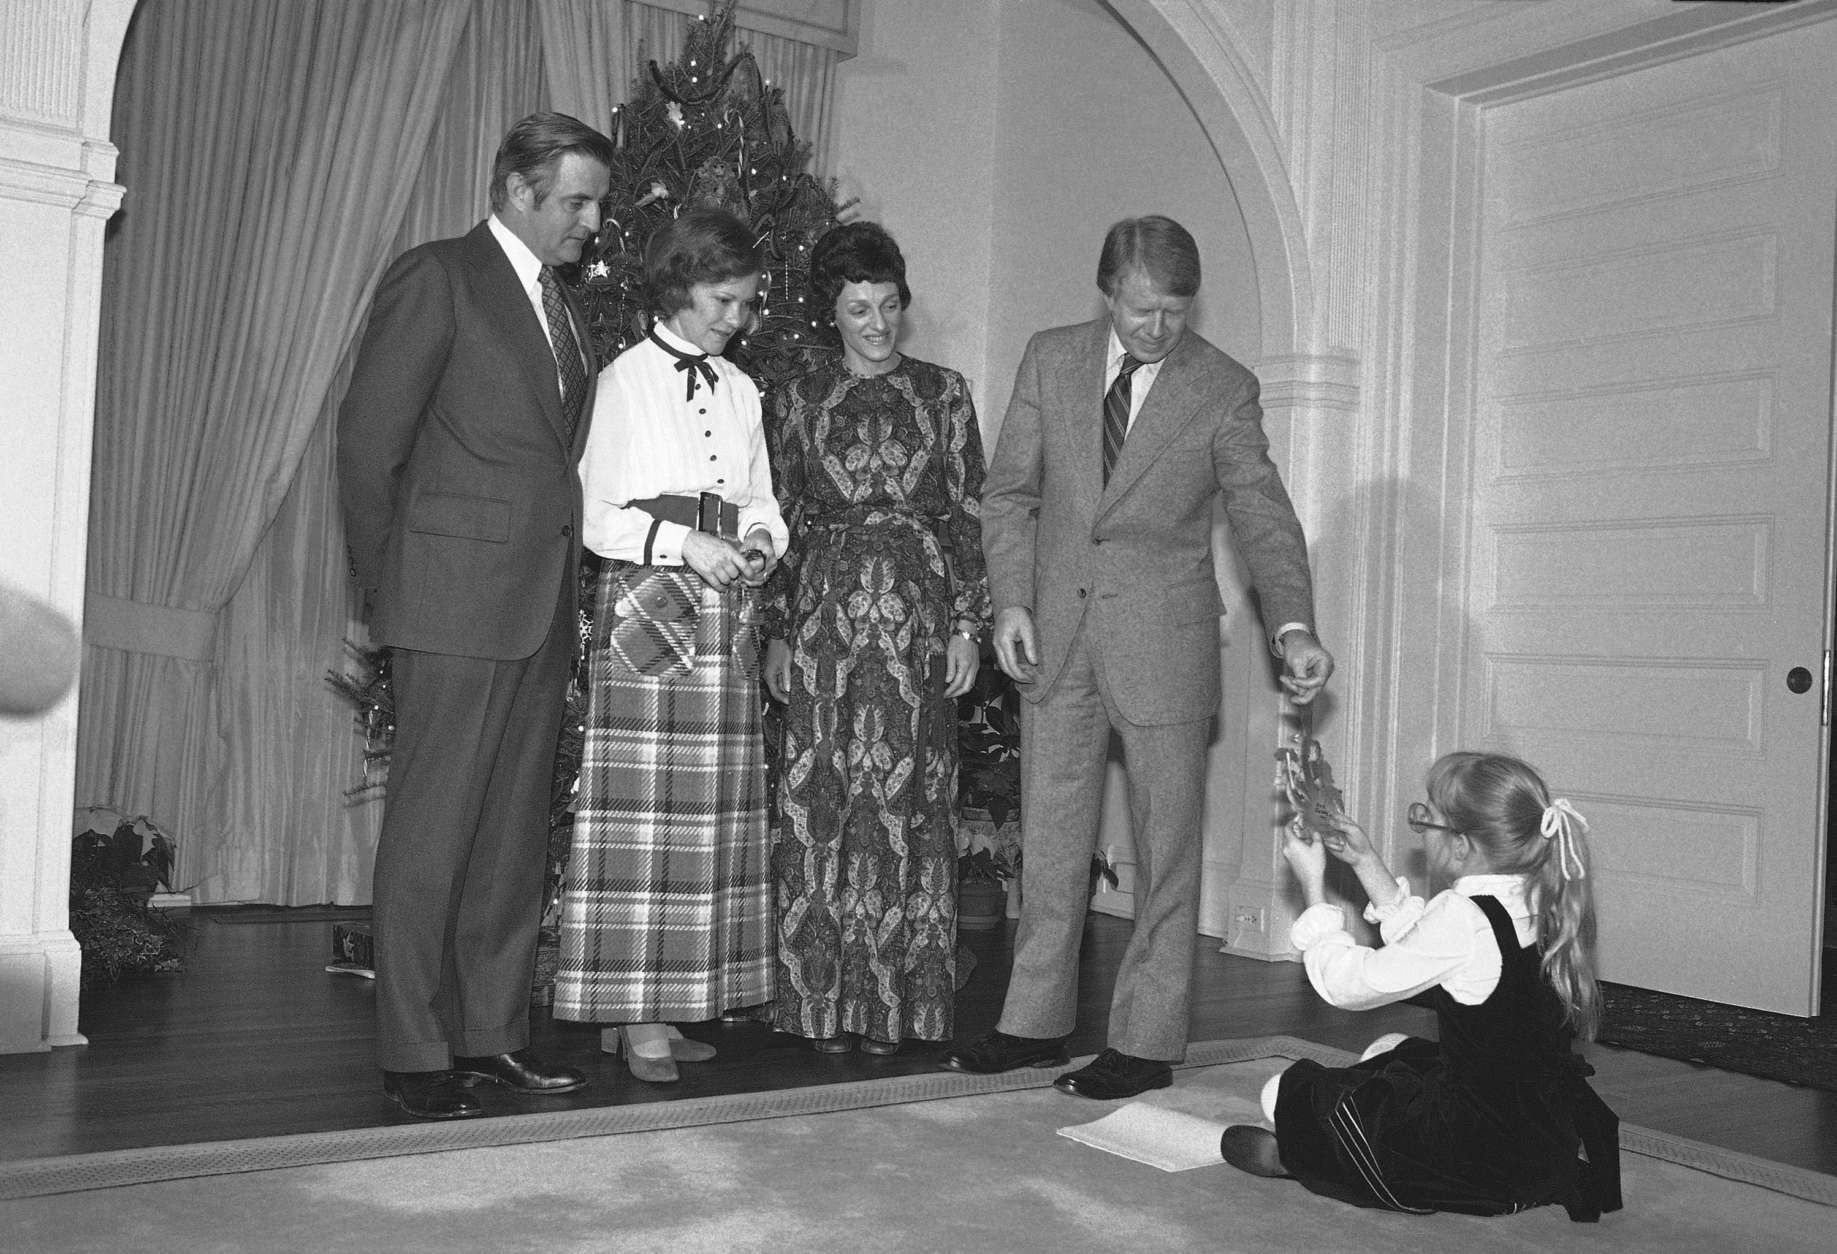 President Jimmy Carter reaches for an ornament from daughter Amy as he poses with Vice President Walter Mondale, left, First Lady Rosalynn Carter, second from left, and Joan Mondale in front of the Mondale's Christmas tree at the Vice President's residence in Washington on Sunday, Dec. 18, 1977. The Carters had dinner with the Vice  President and his wife. (AP Photo)